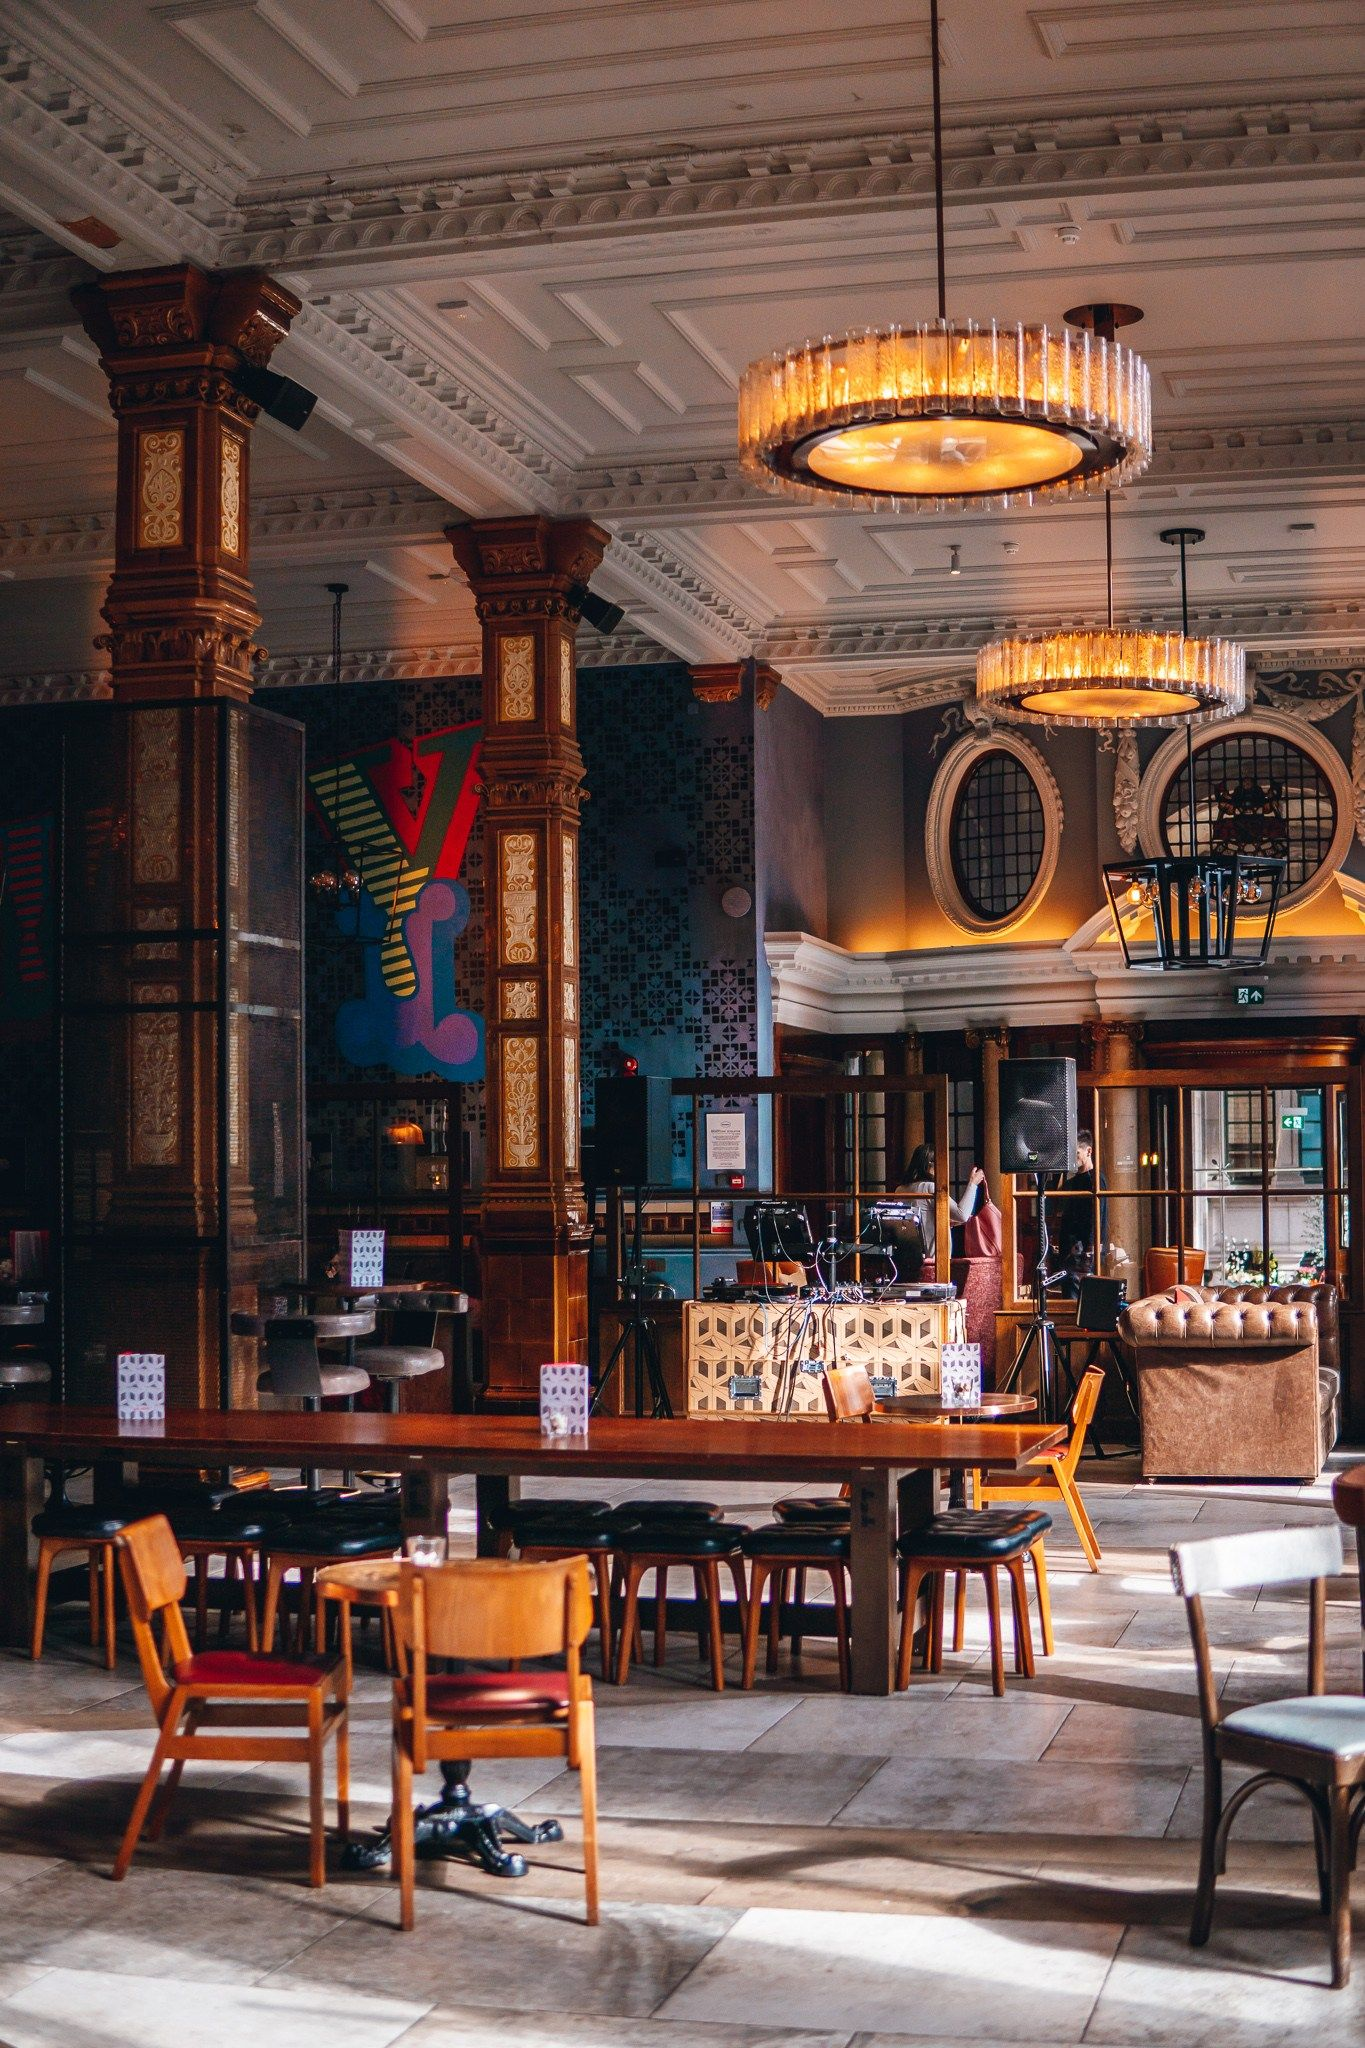 The 10 Best Places To Eat In Manchester in 2020 Best